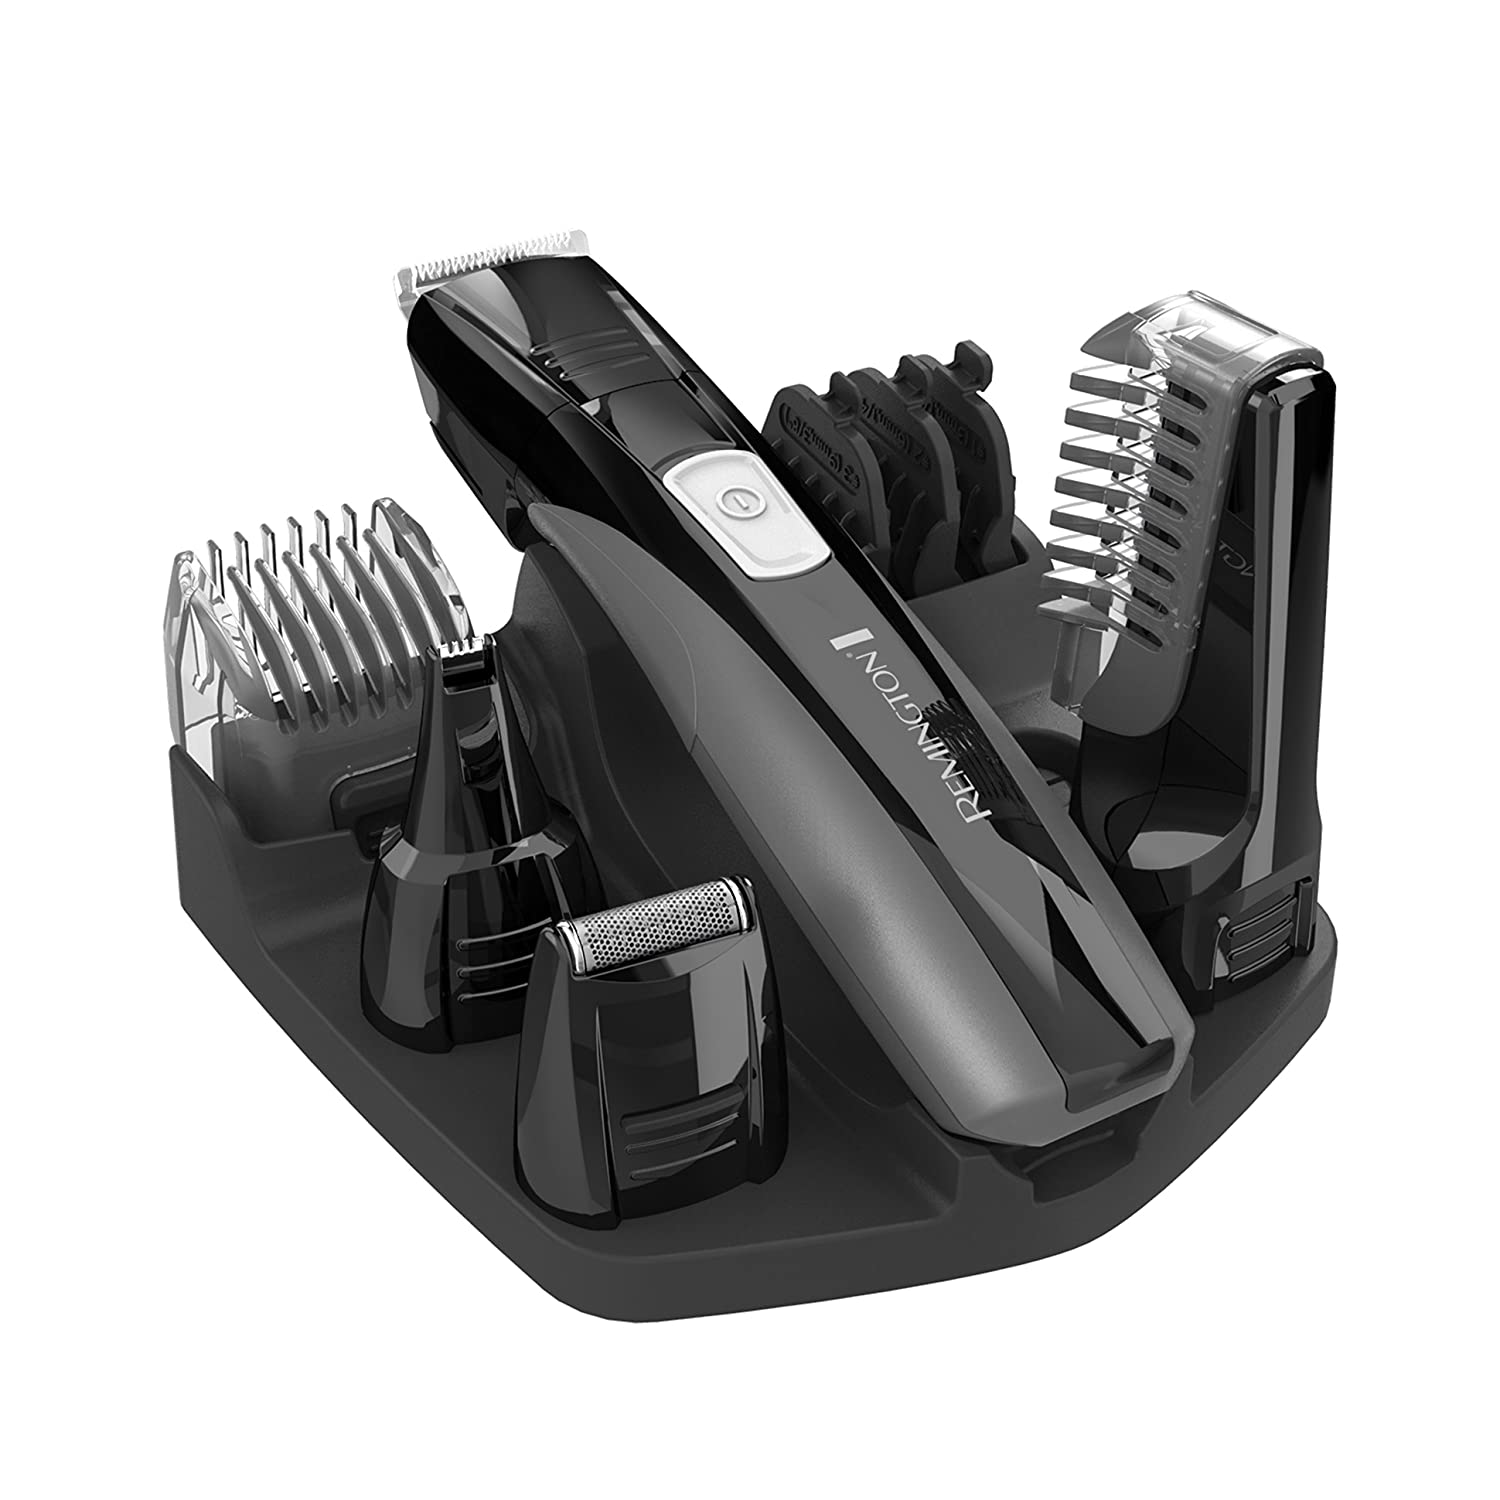 Remington PG525 Head to Toe Lithium Powered Body Groomer Kit  Beard Trimmer  10 Pieces